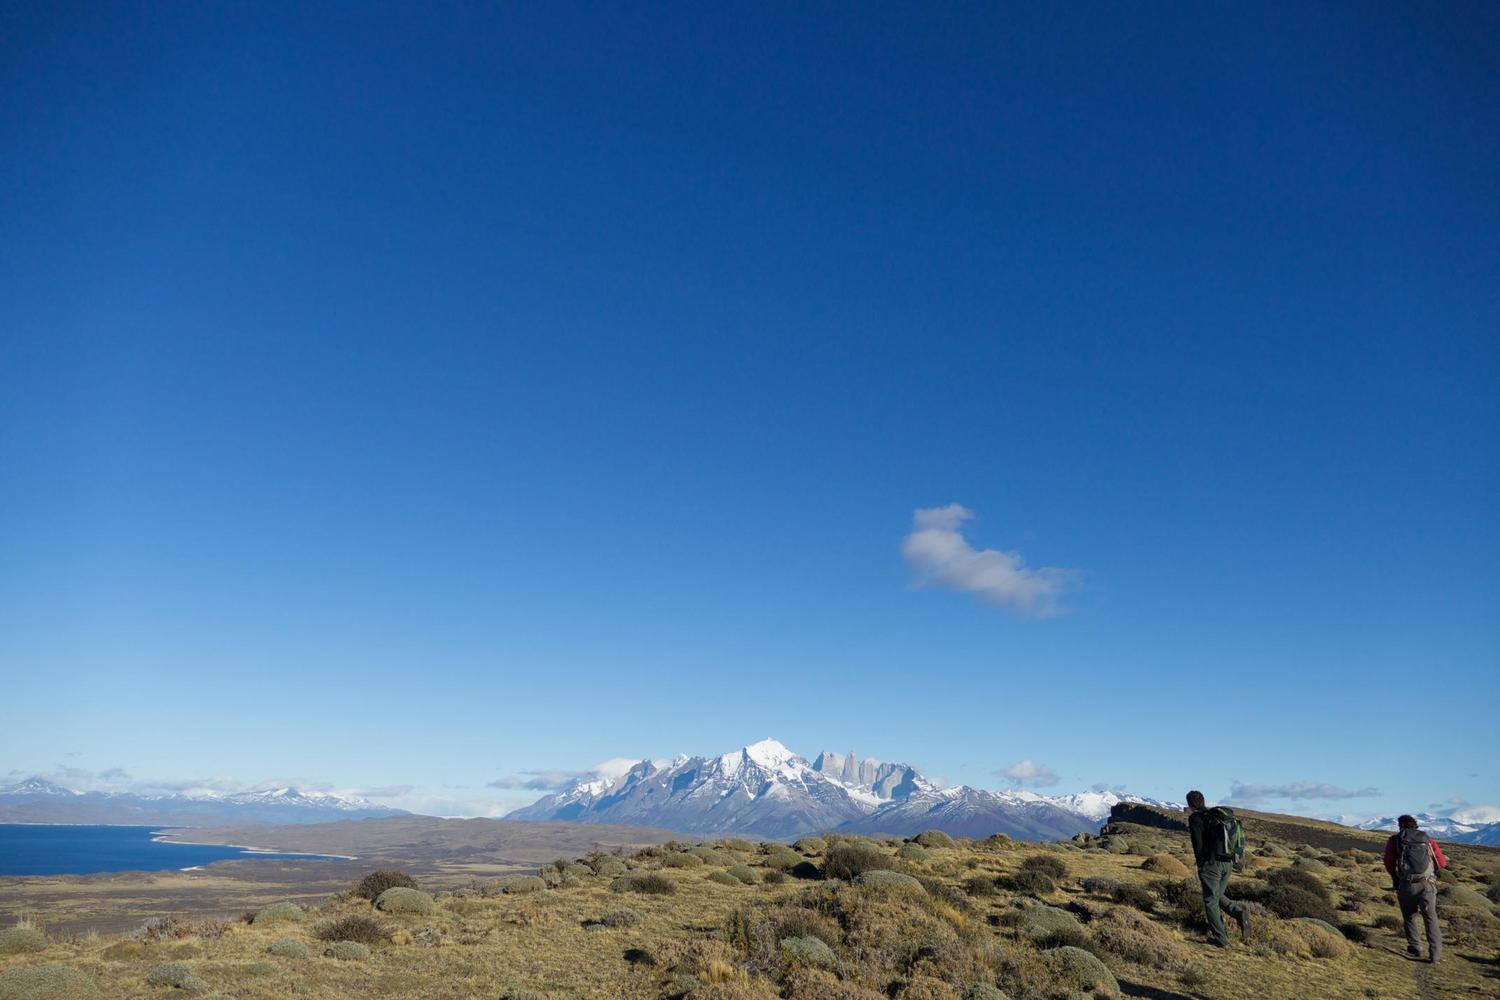 Walking in Las Cornisas on the outskirts of Torres del Paine